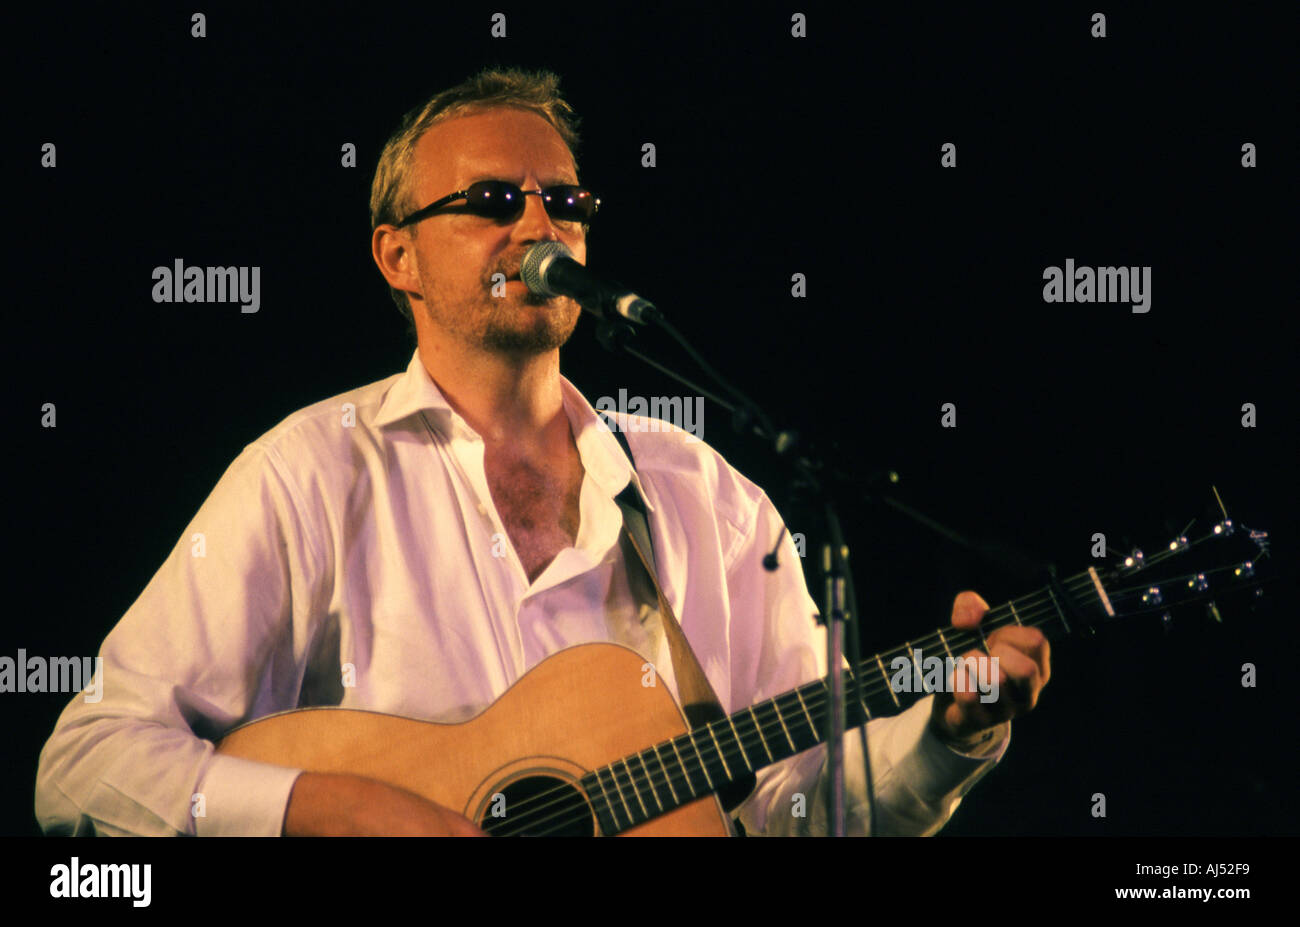 Boo Hewerdine performing at the Cambridge Folk Festival 2003 - Stock Image